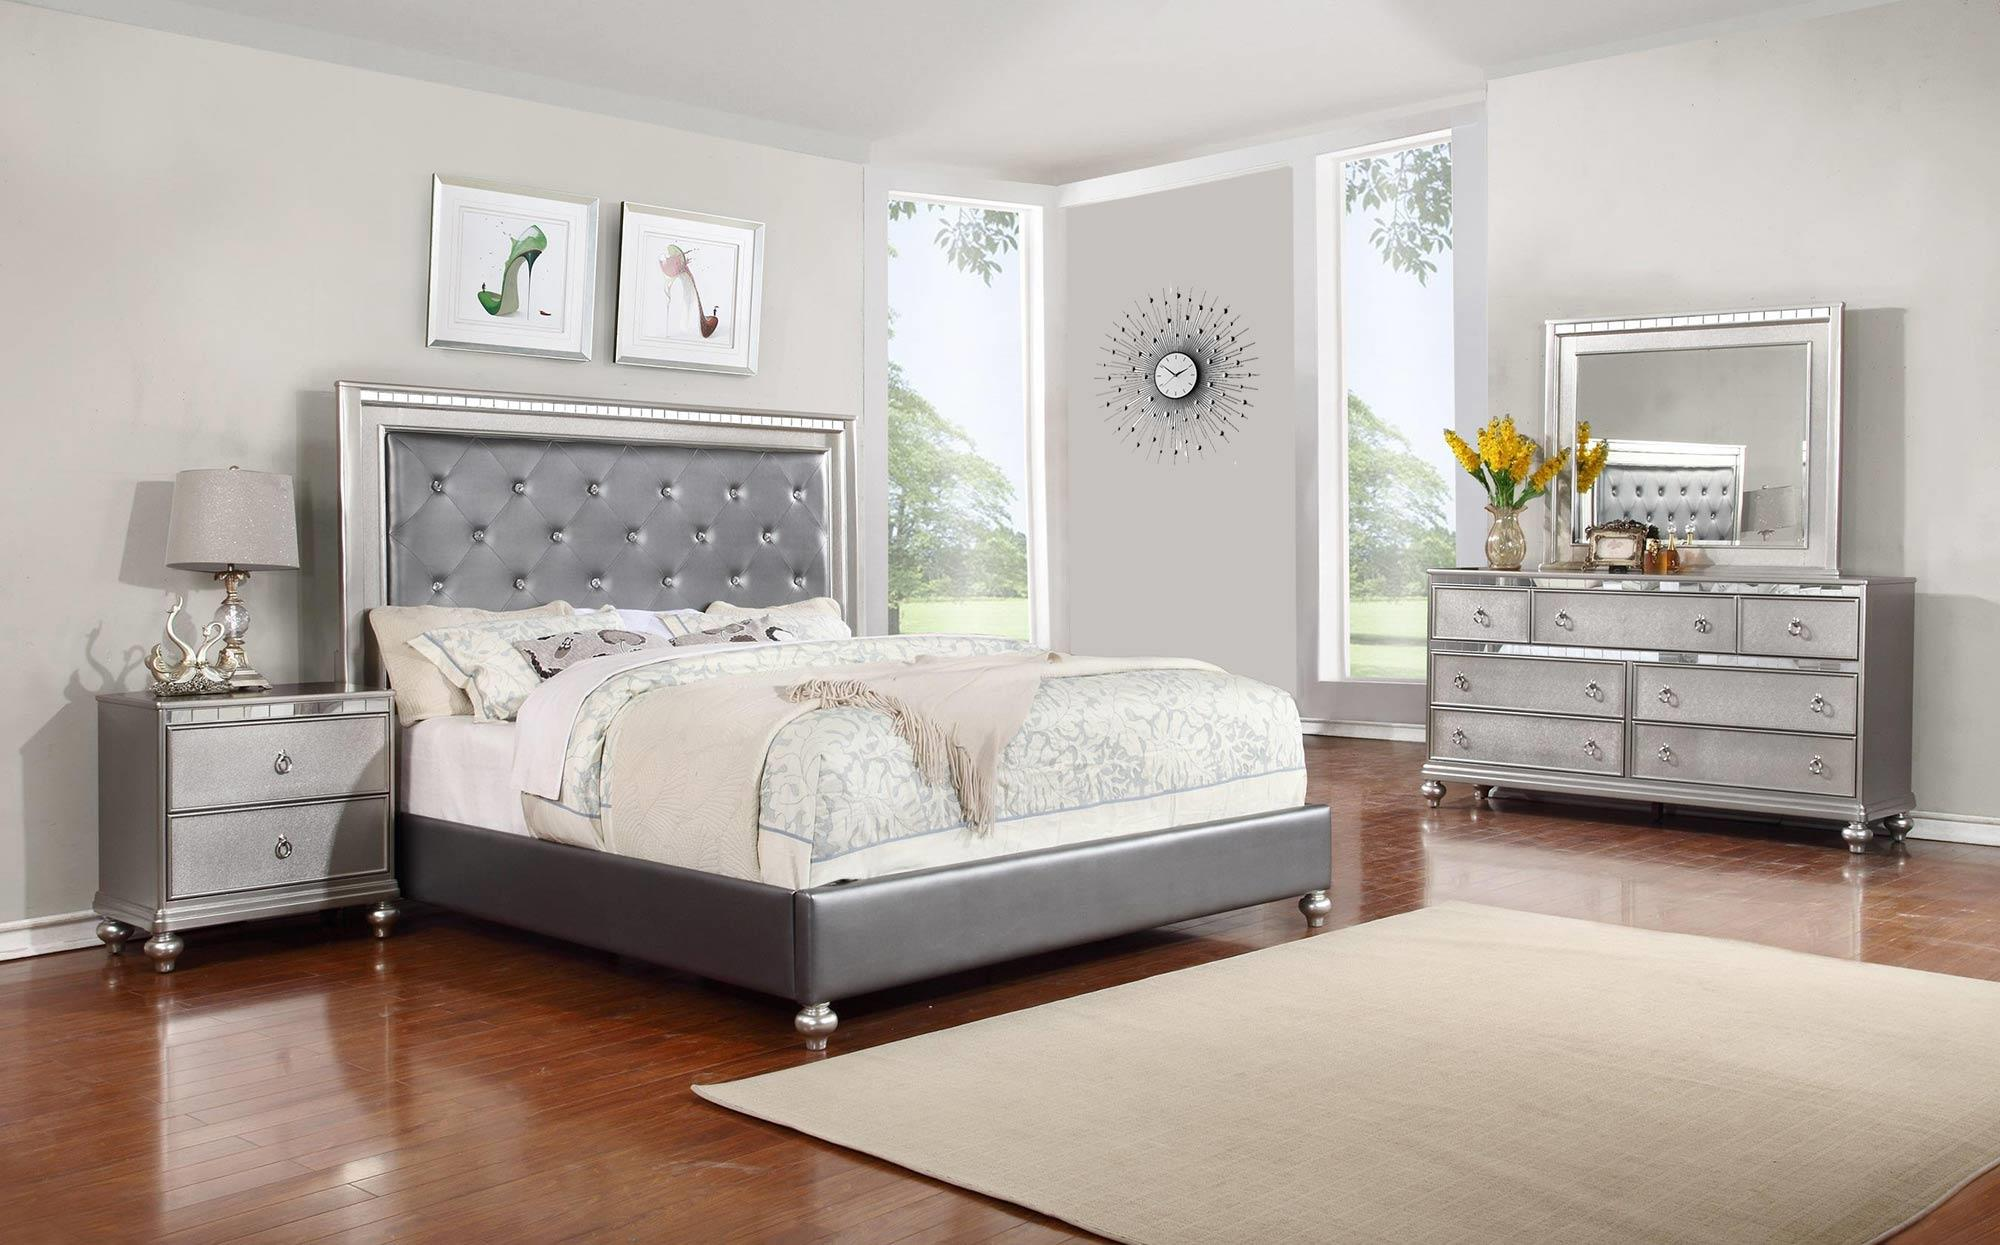 Lifestyle Glam 4 Piece King Bedroom Set   Item Number: C4183A K